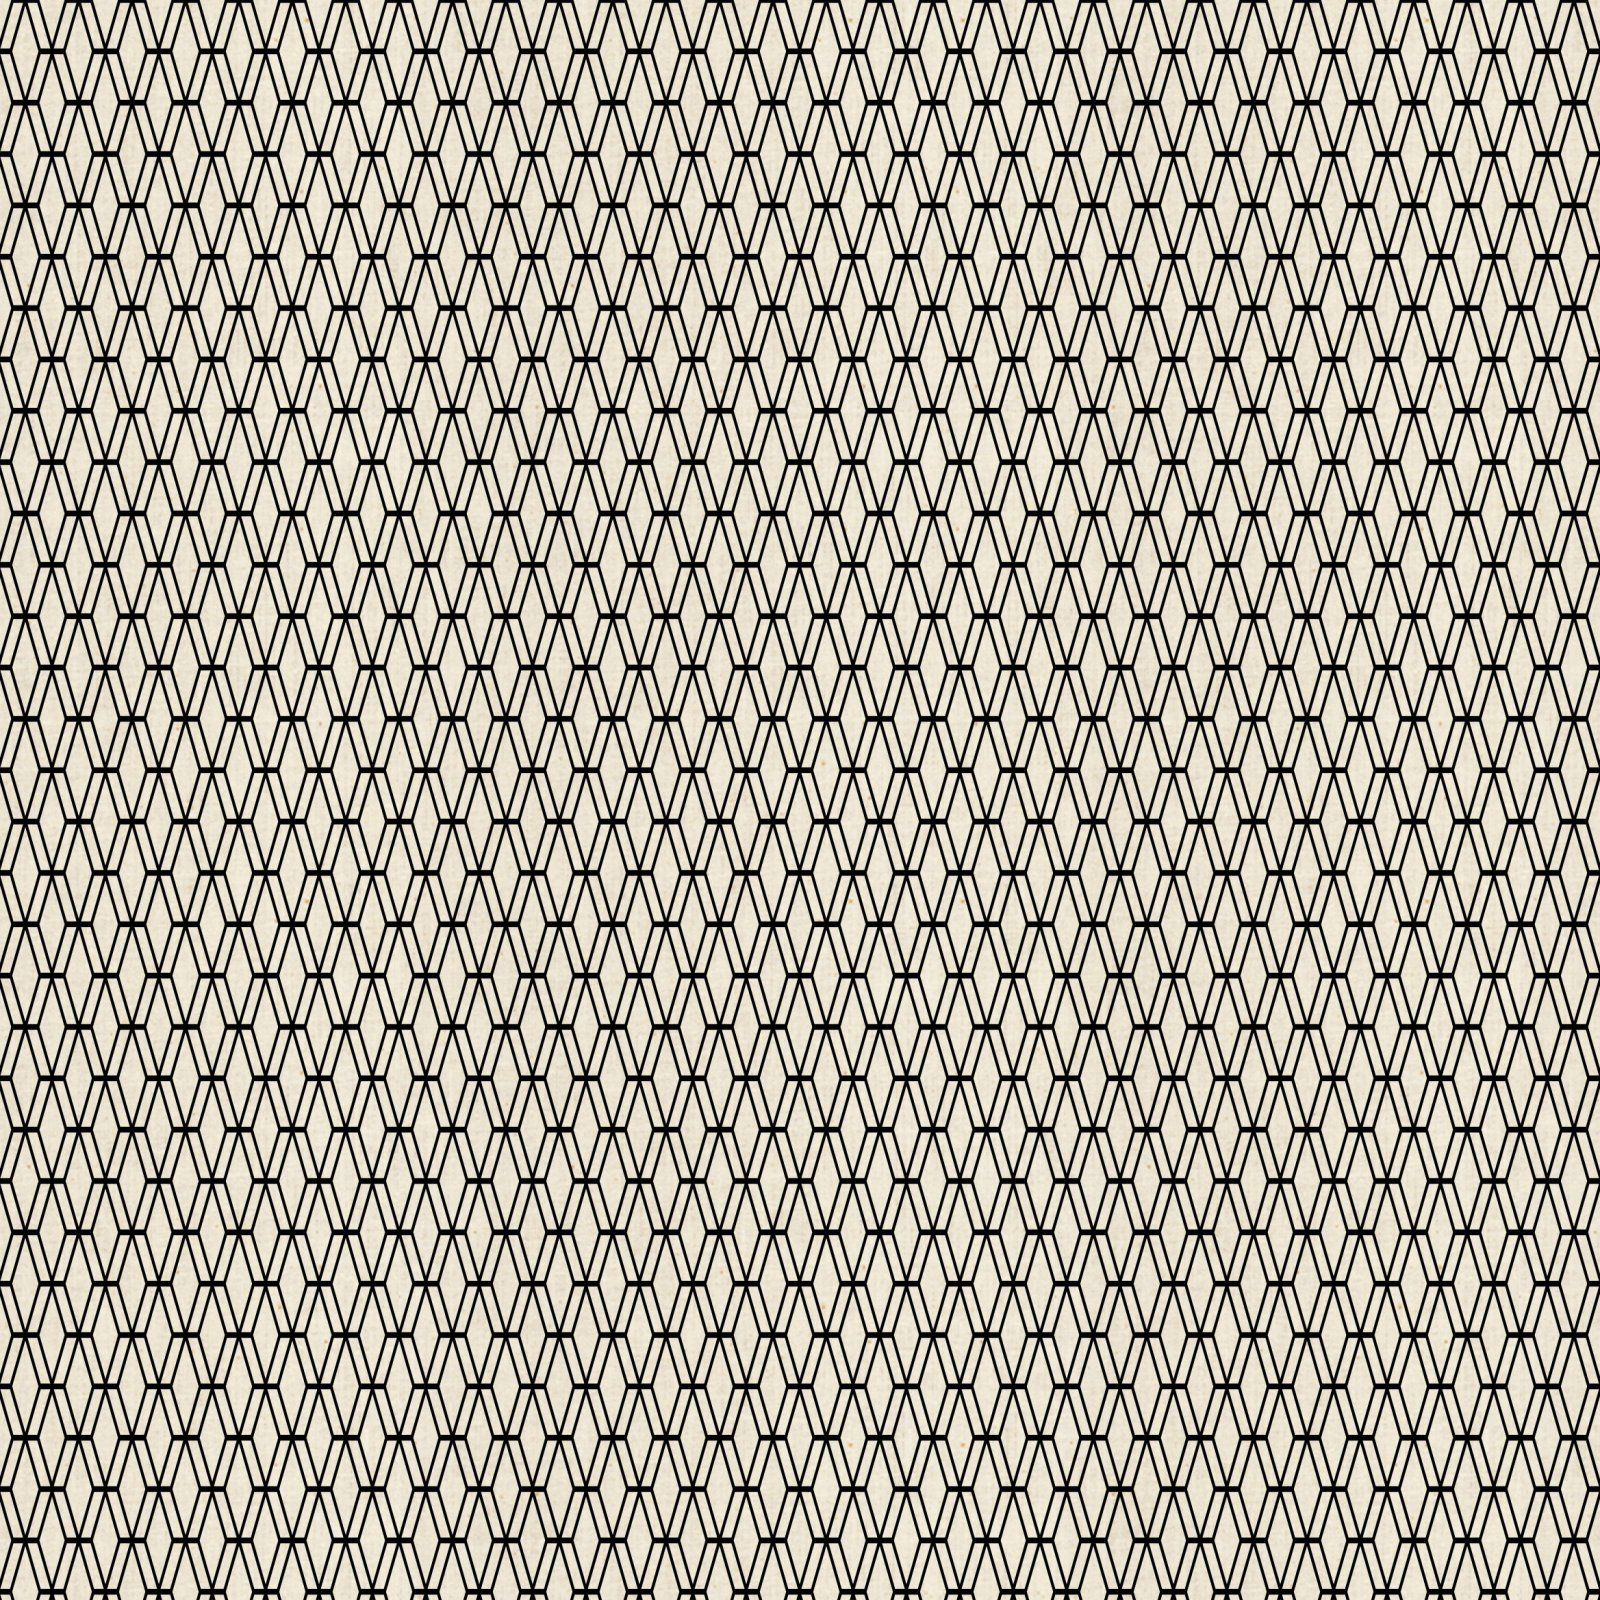 Cotton + Steel- Mishmesh (fishnet stockings unbleached)